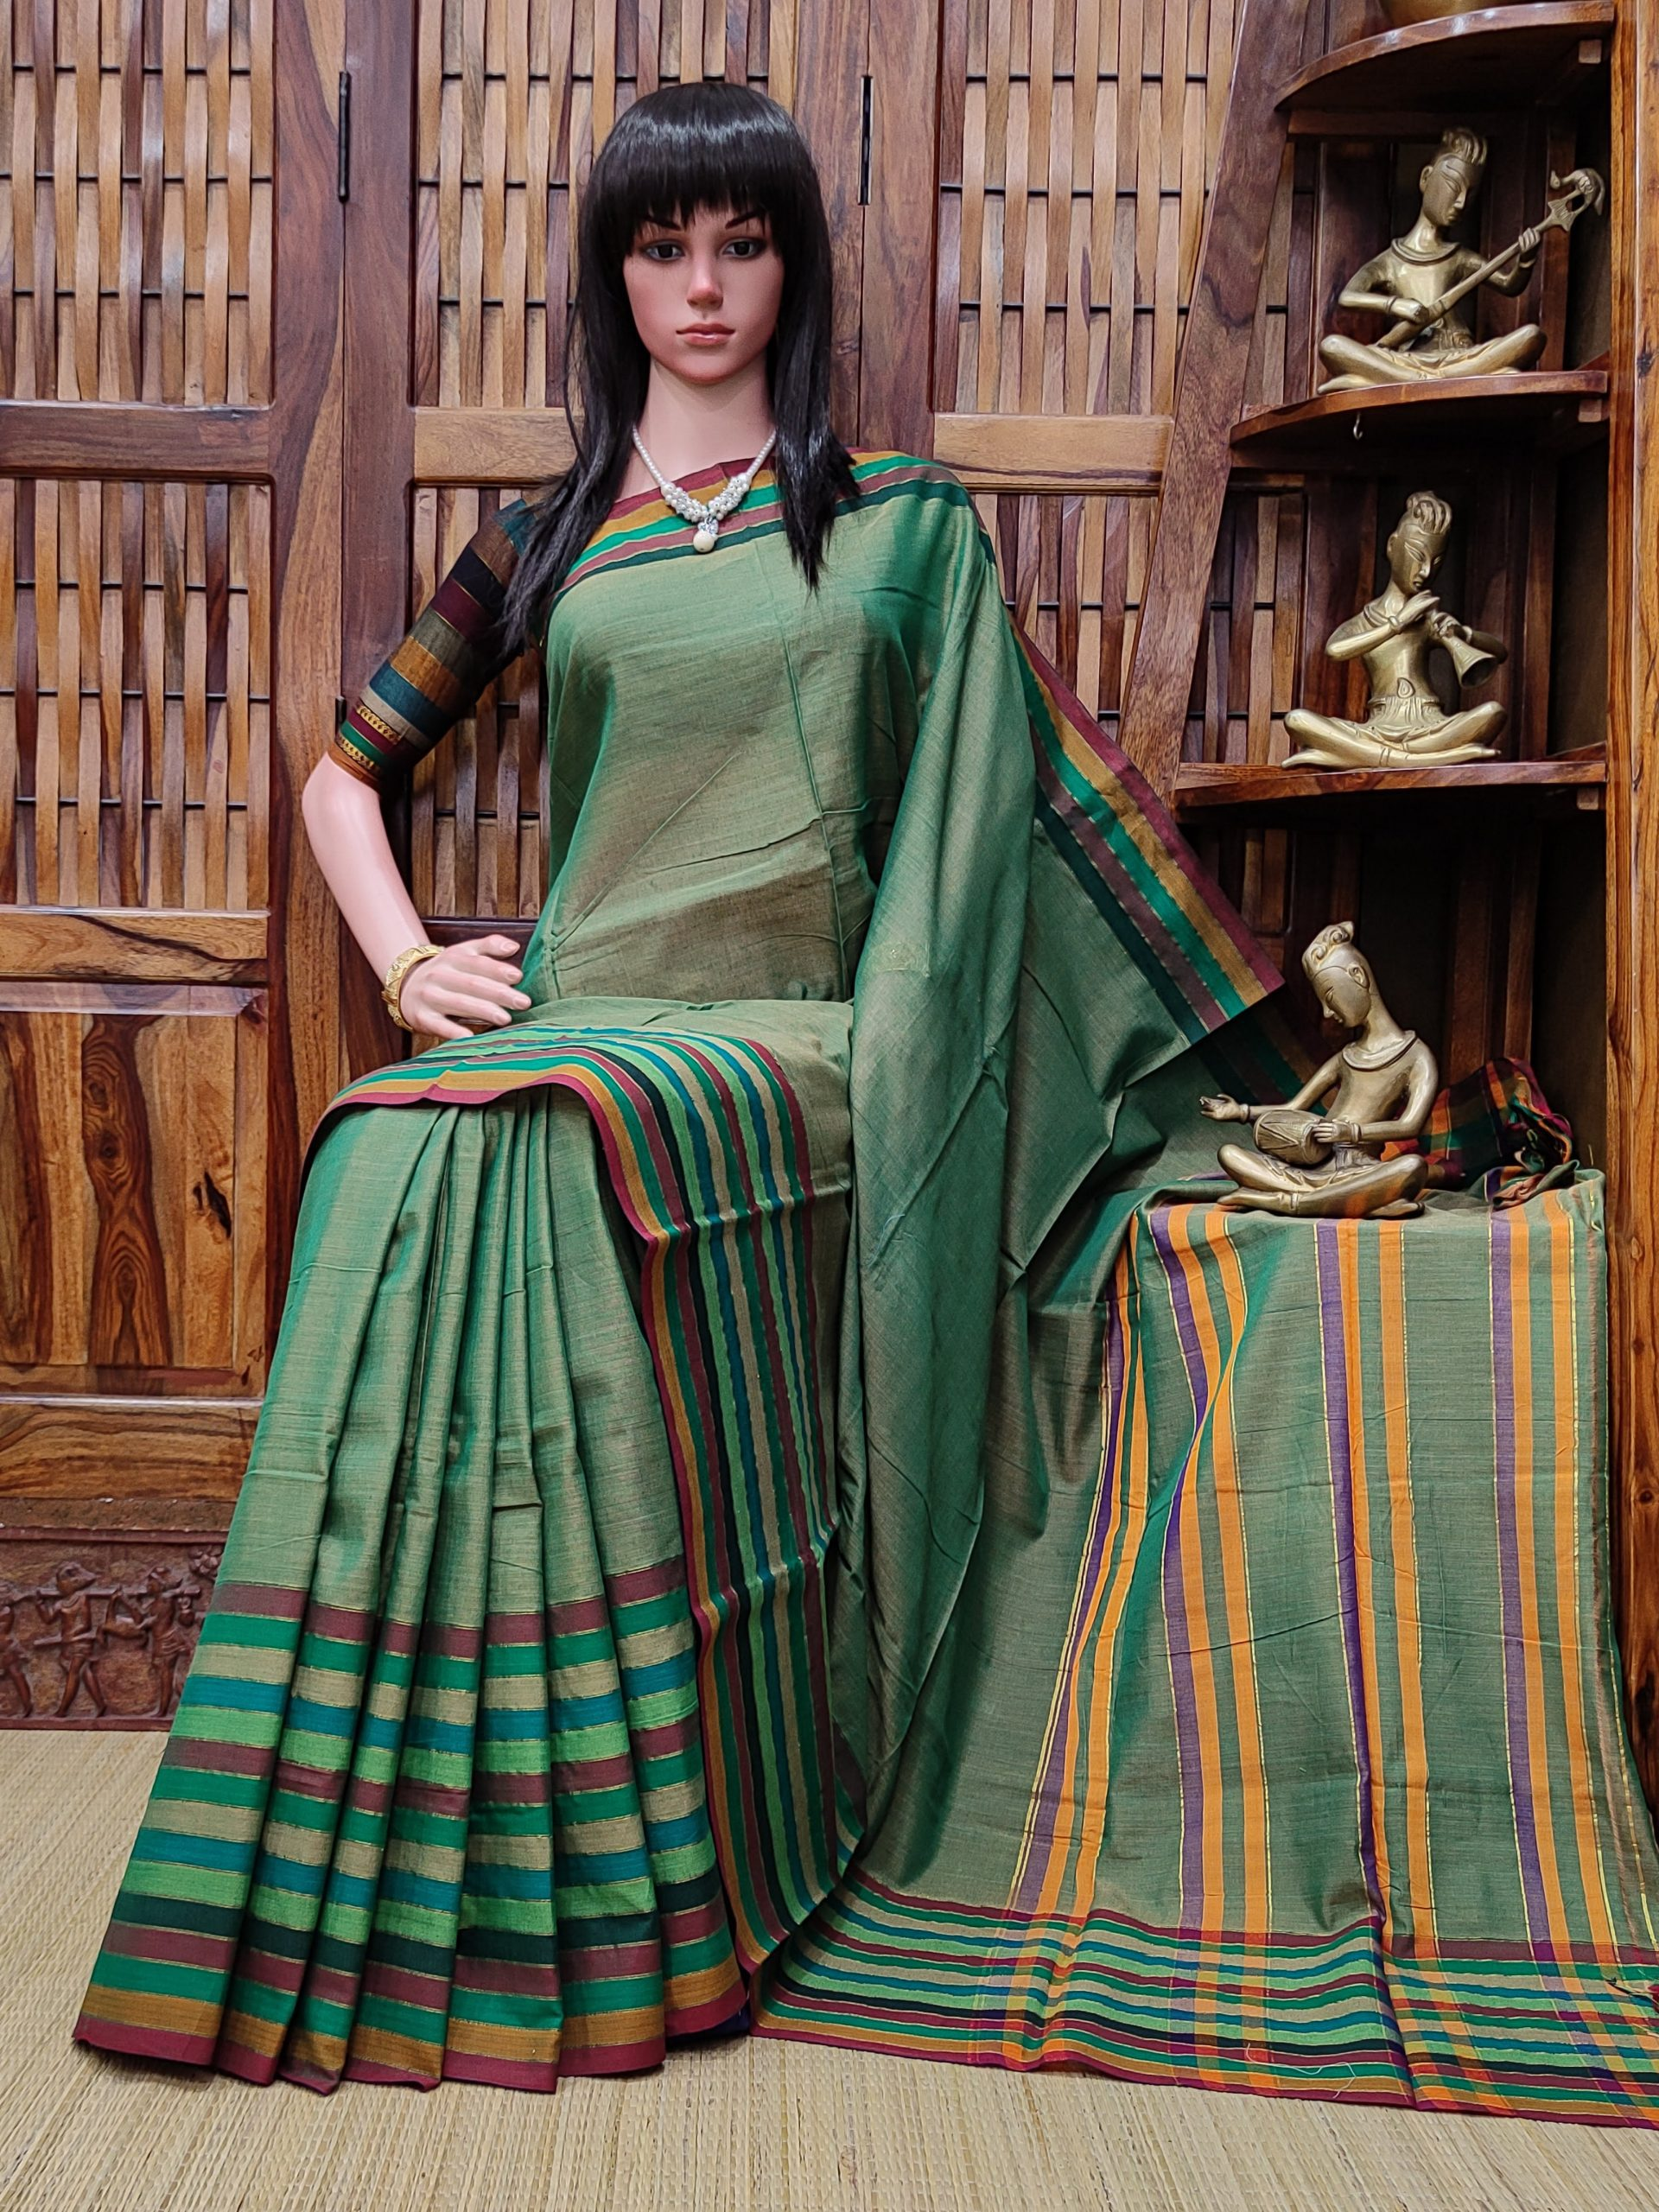 Malavika - Mercerized Pearl Cotton Saree